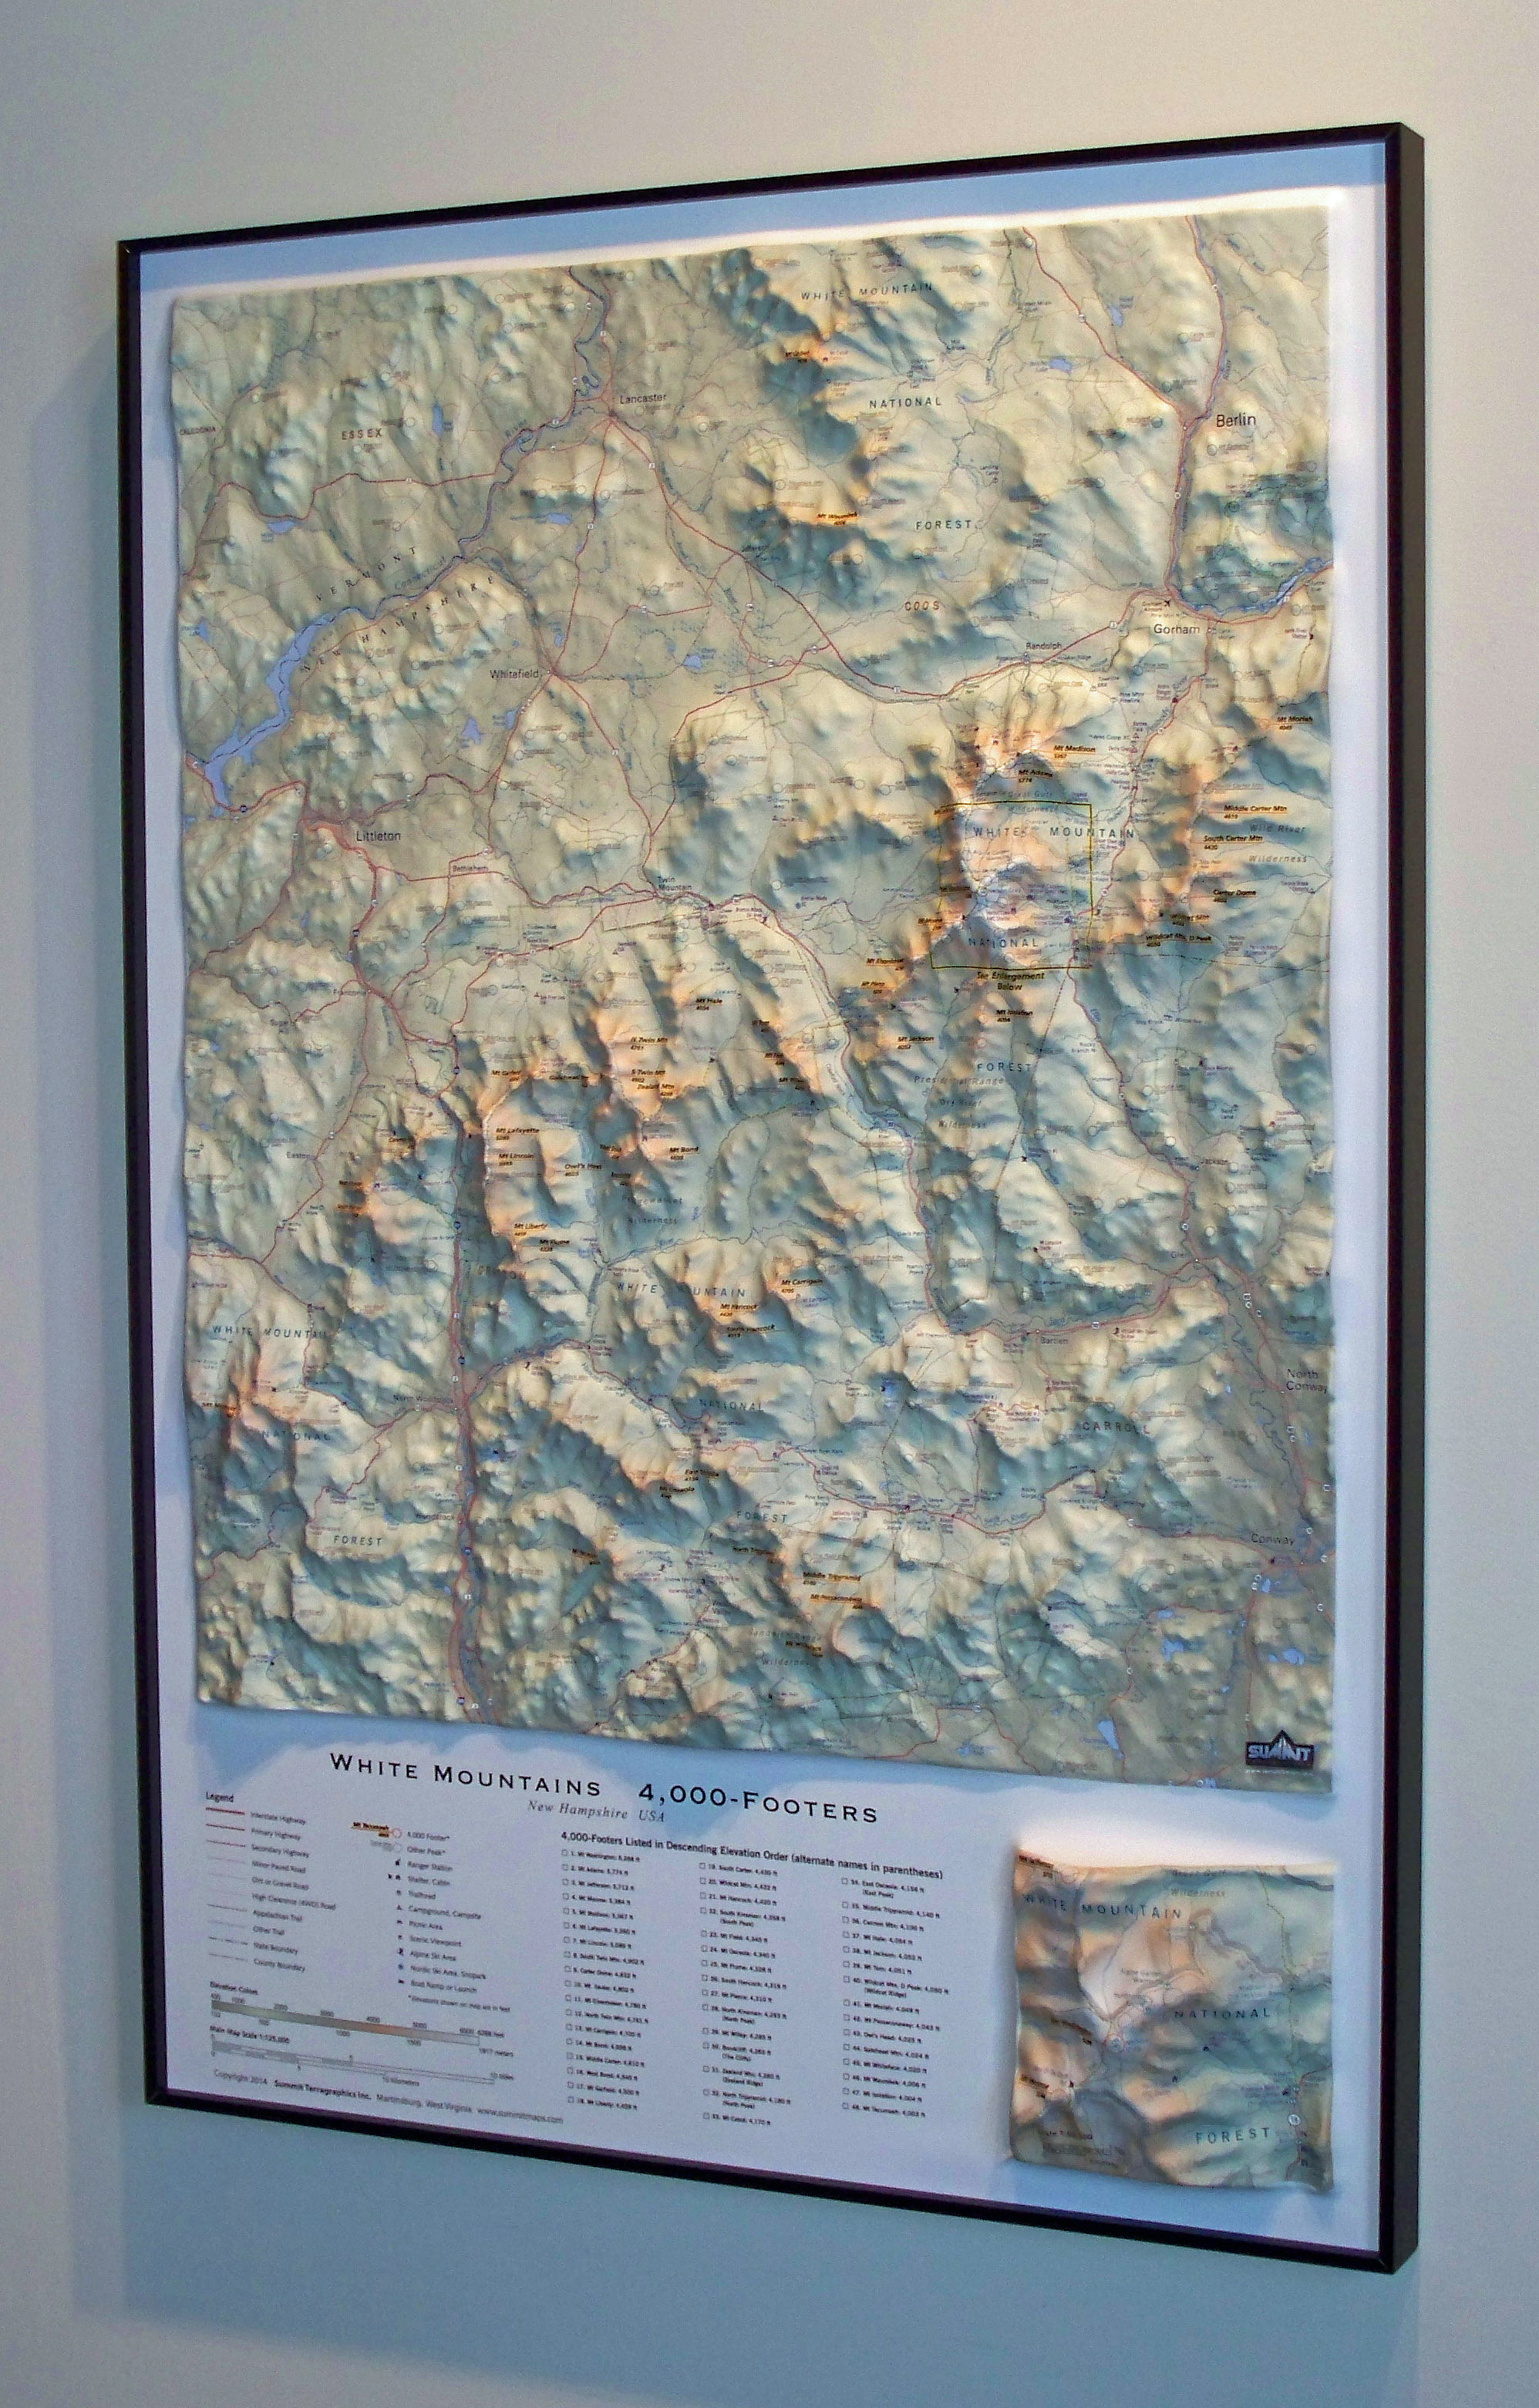 Summit Terragraphics Raised Relief Wall Map Of The White Mountains 4000 Footers Is Available With A Variety Of Framing Options